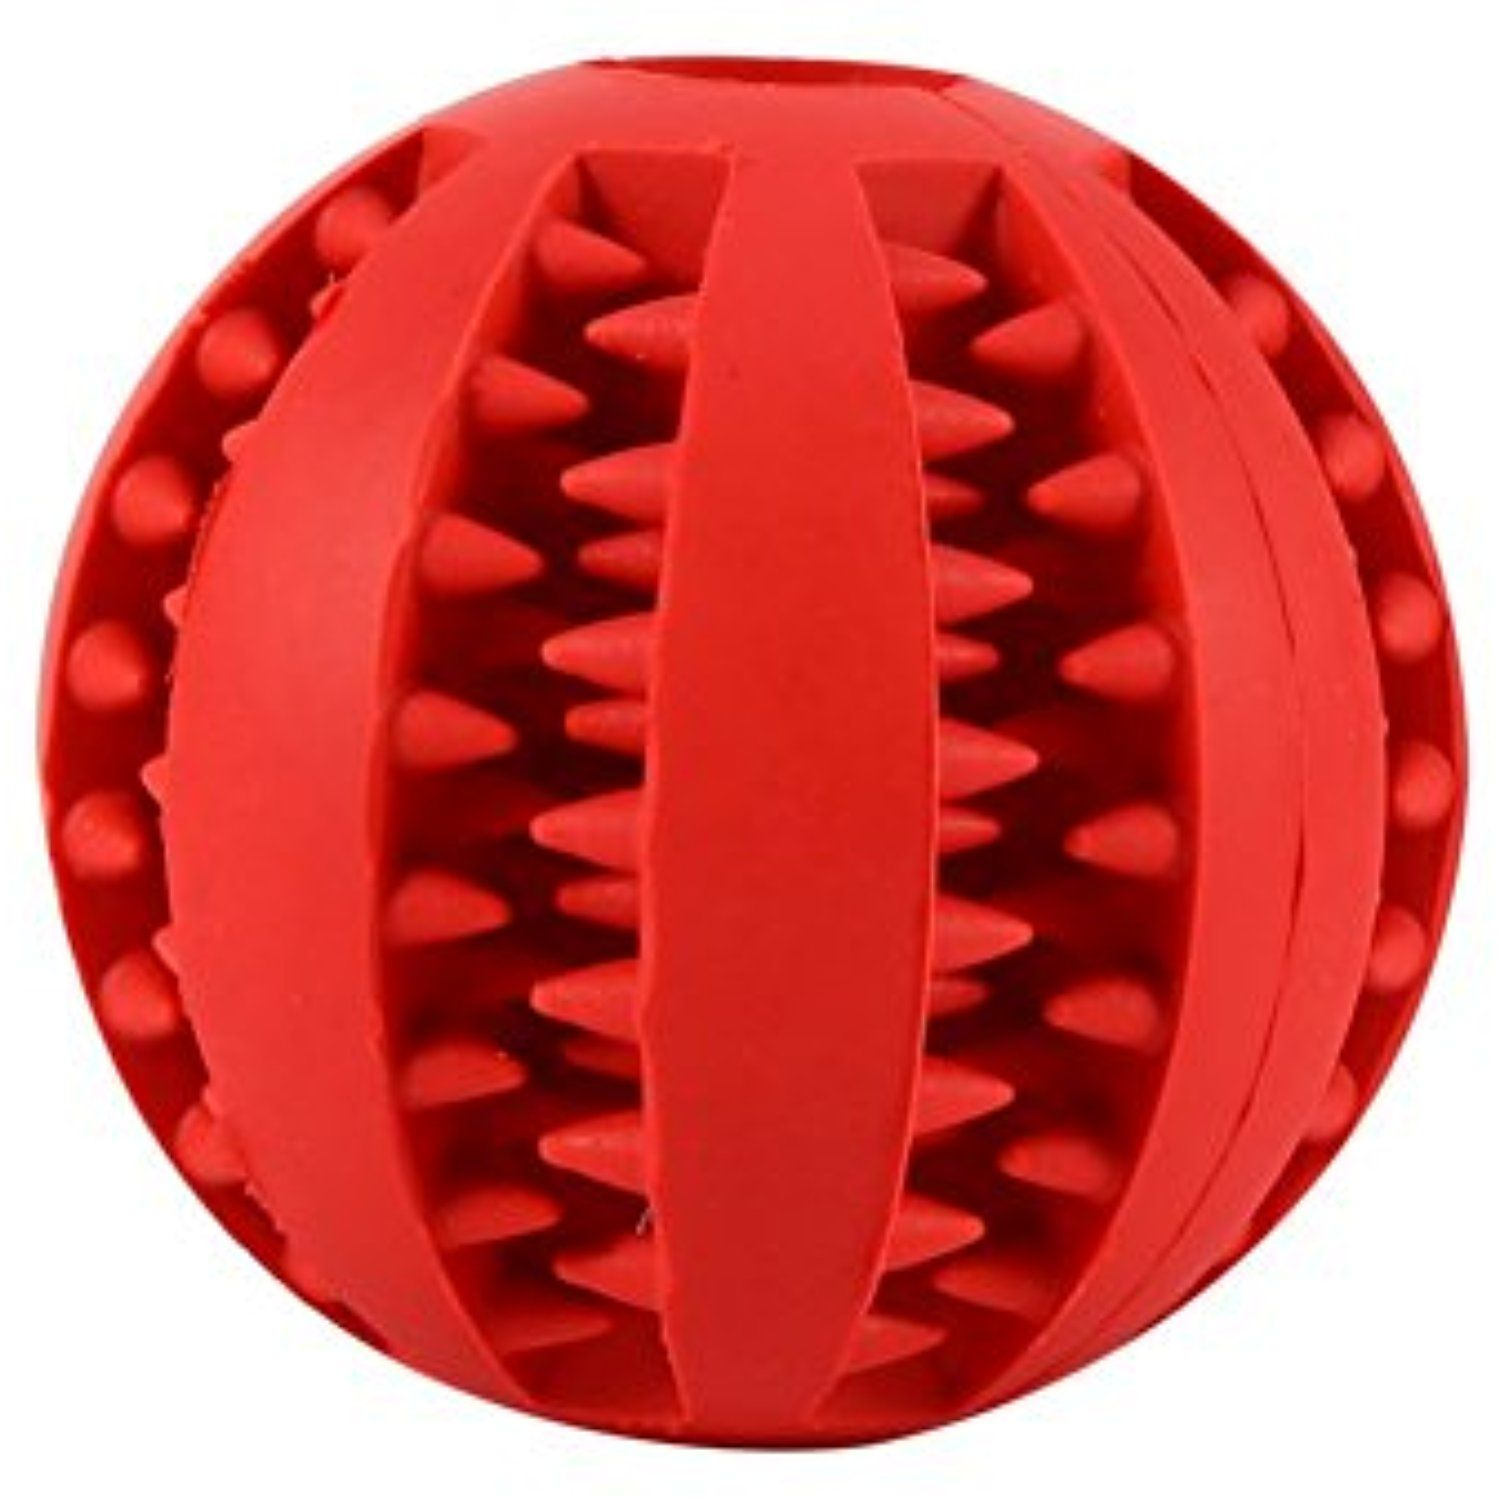 Crysle Rubber Resistant Bite Water Dog Balls Ball For Dogs Pet Cat